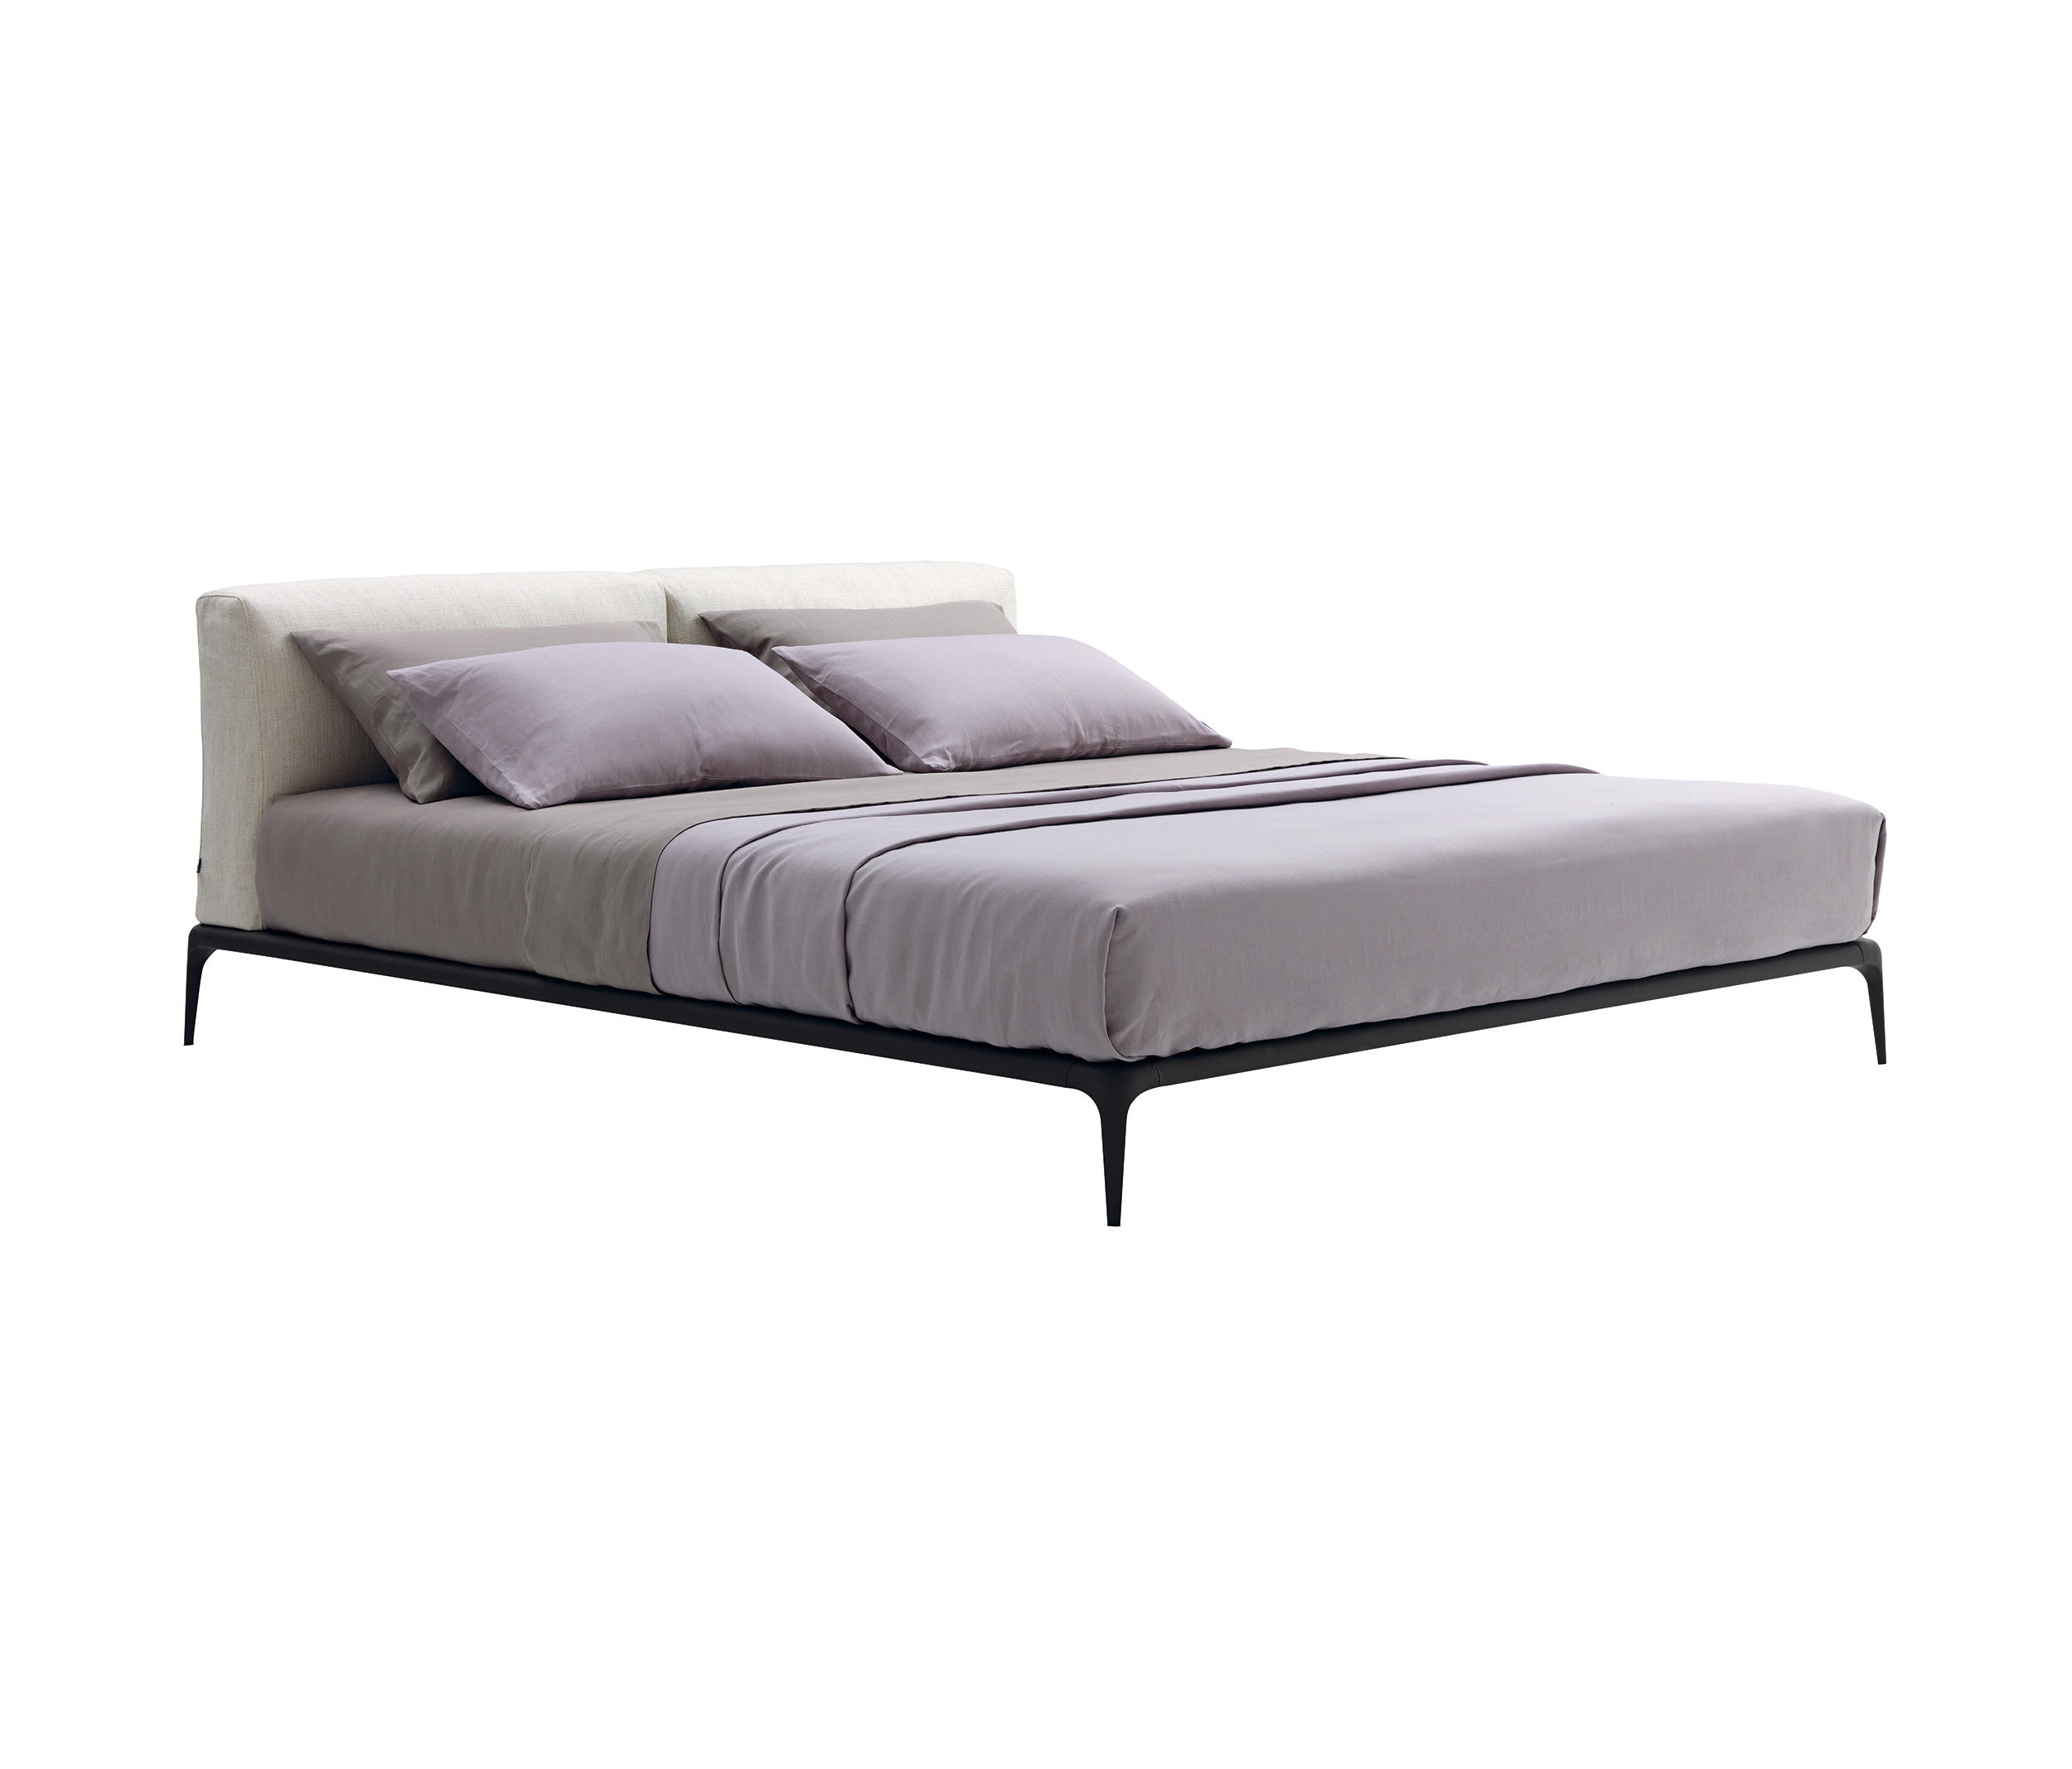 Park letto letti matrimoniali poliform architonic - Letto park poliform ...